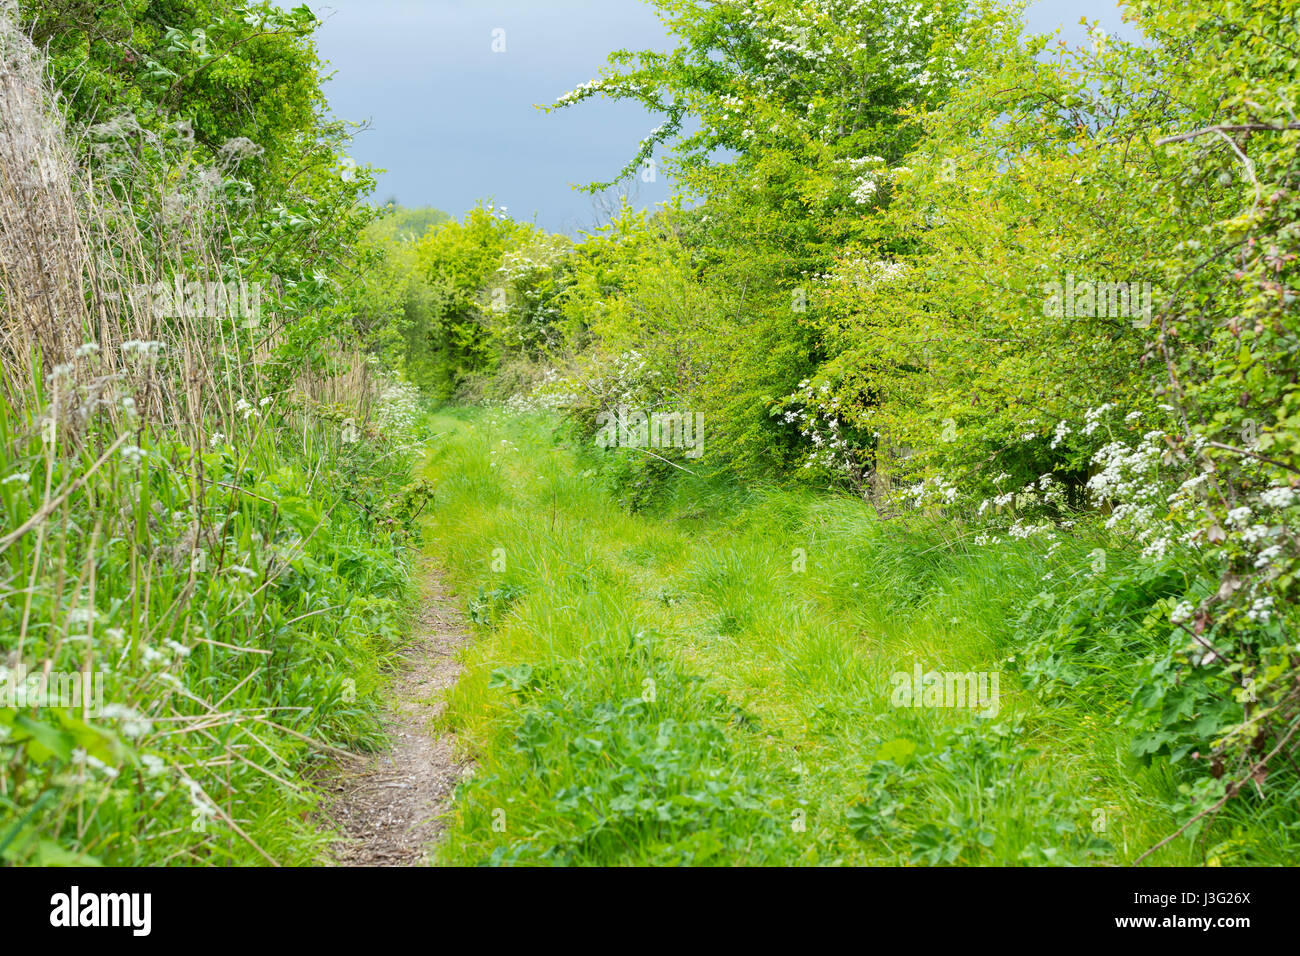 overgrown-narrow-country-path-in-spring-